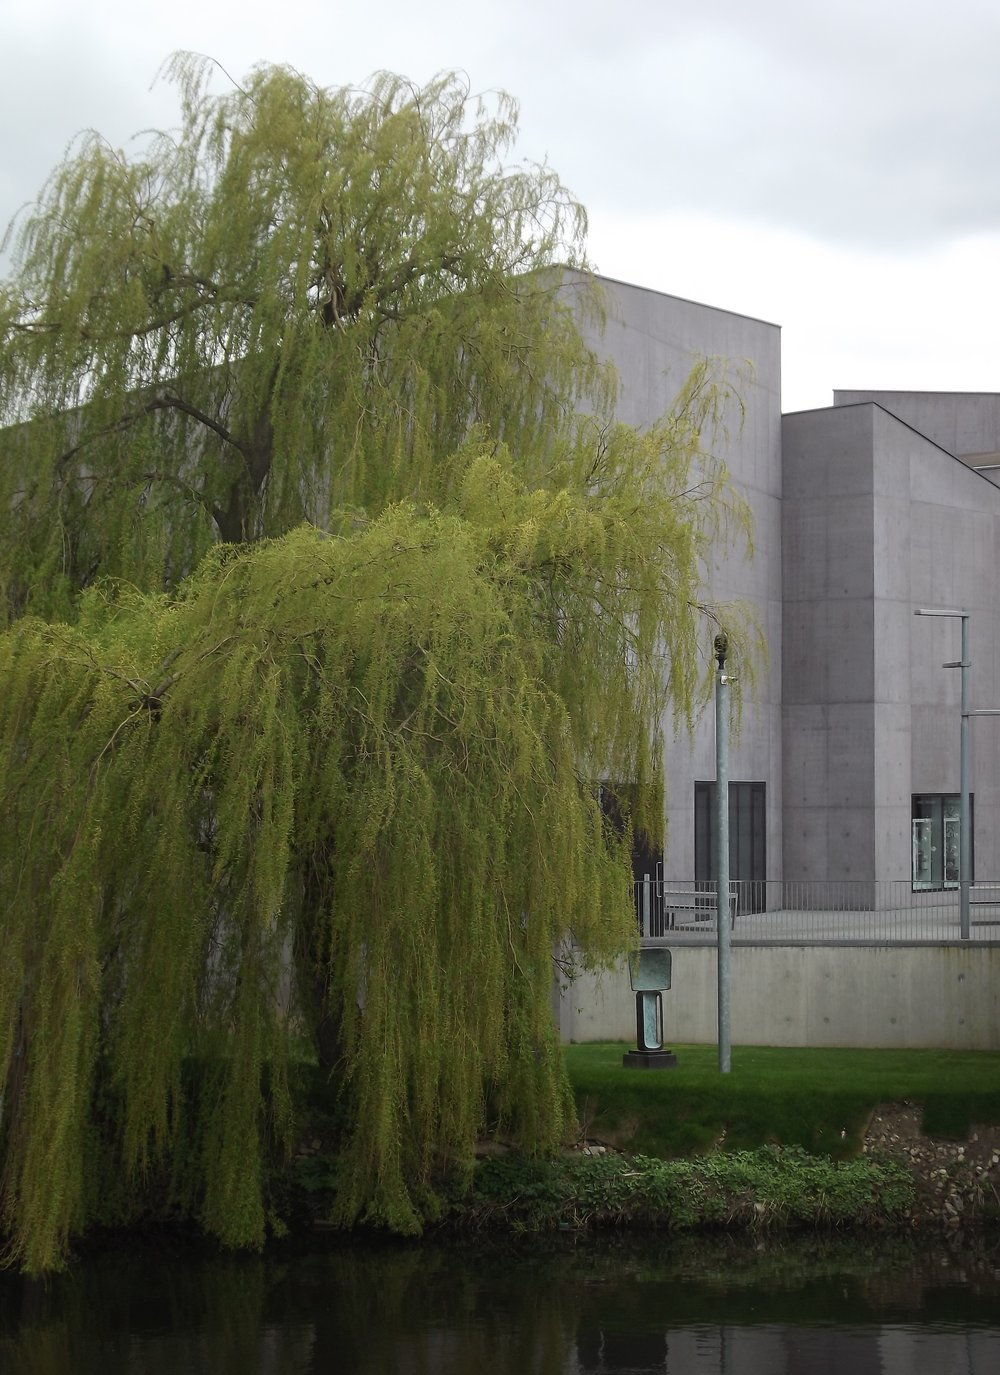 The exterior of Hepworth Wakefield gallery.